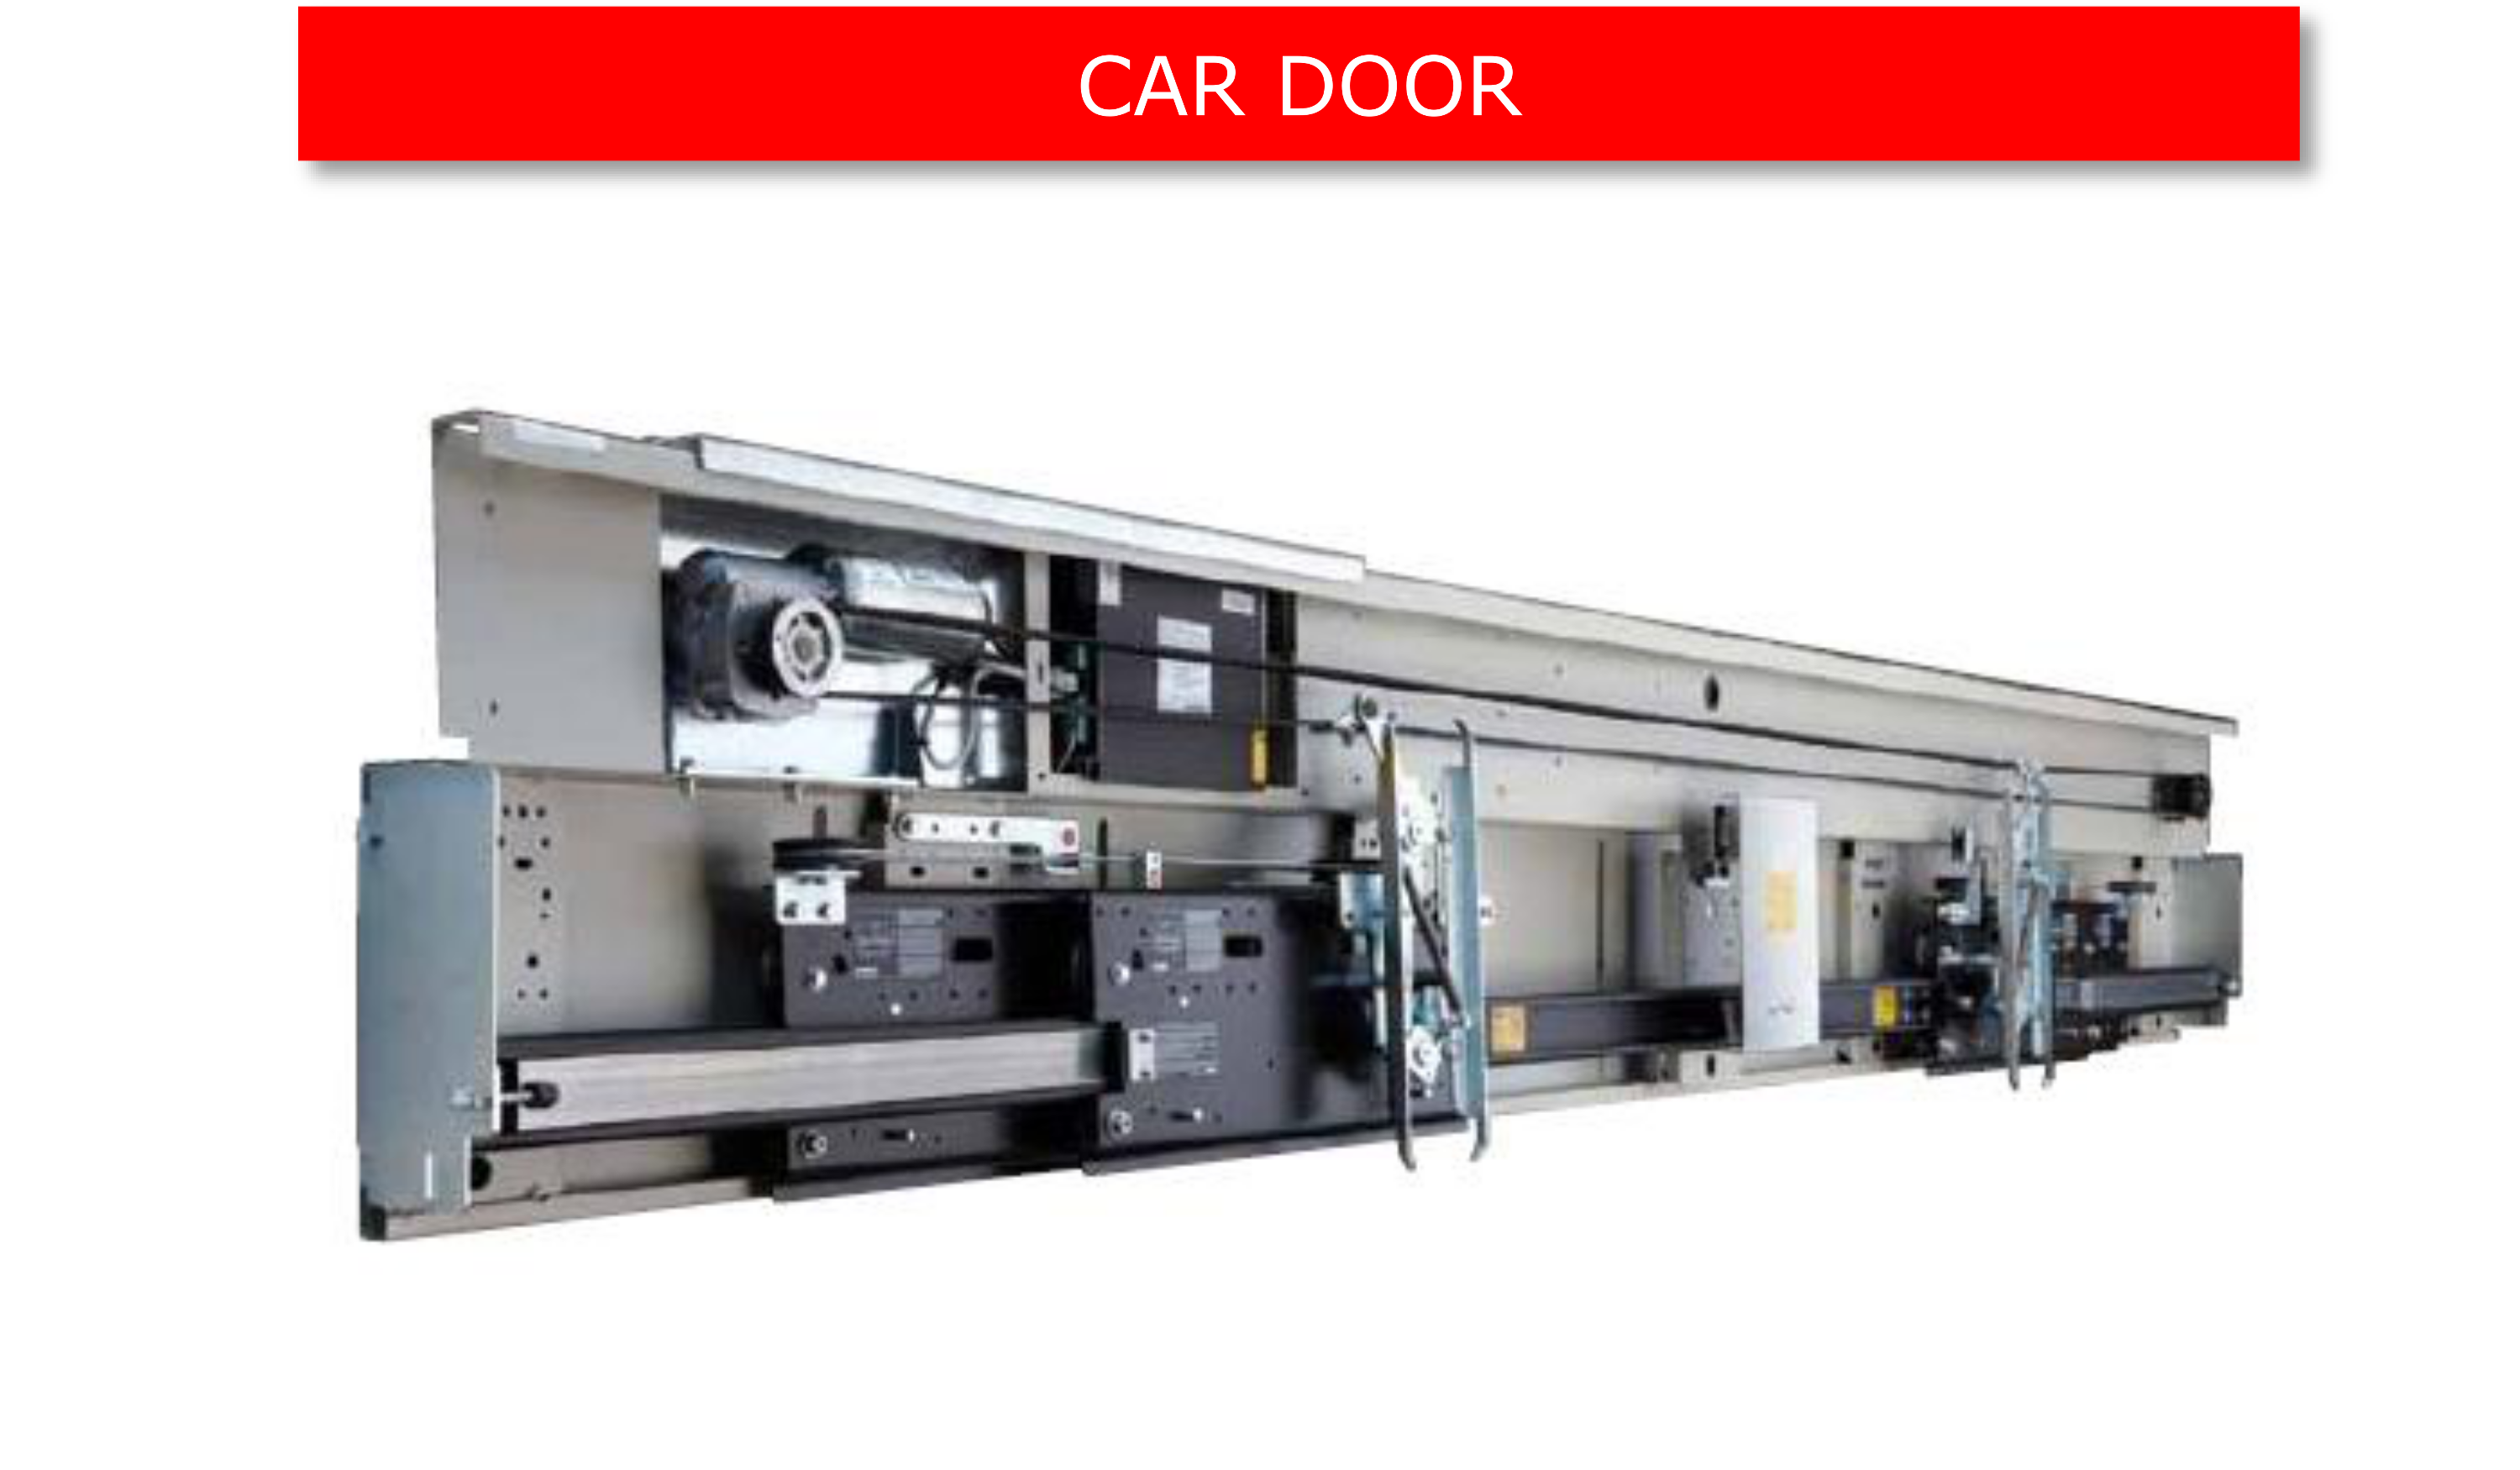 Car door components